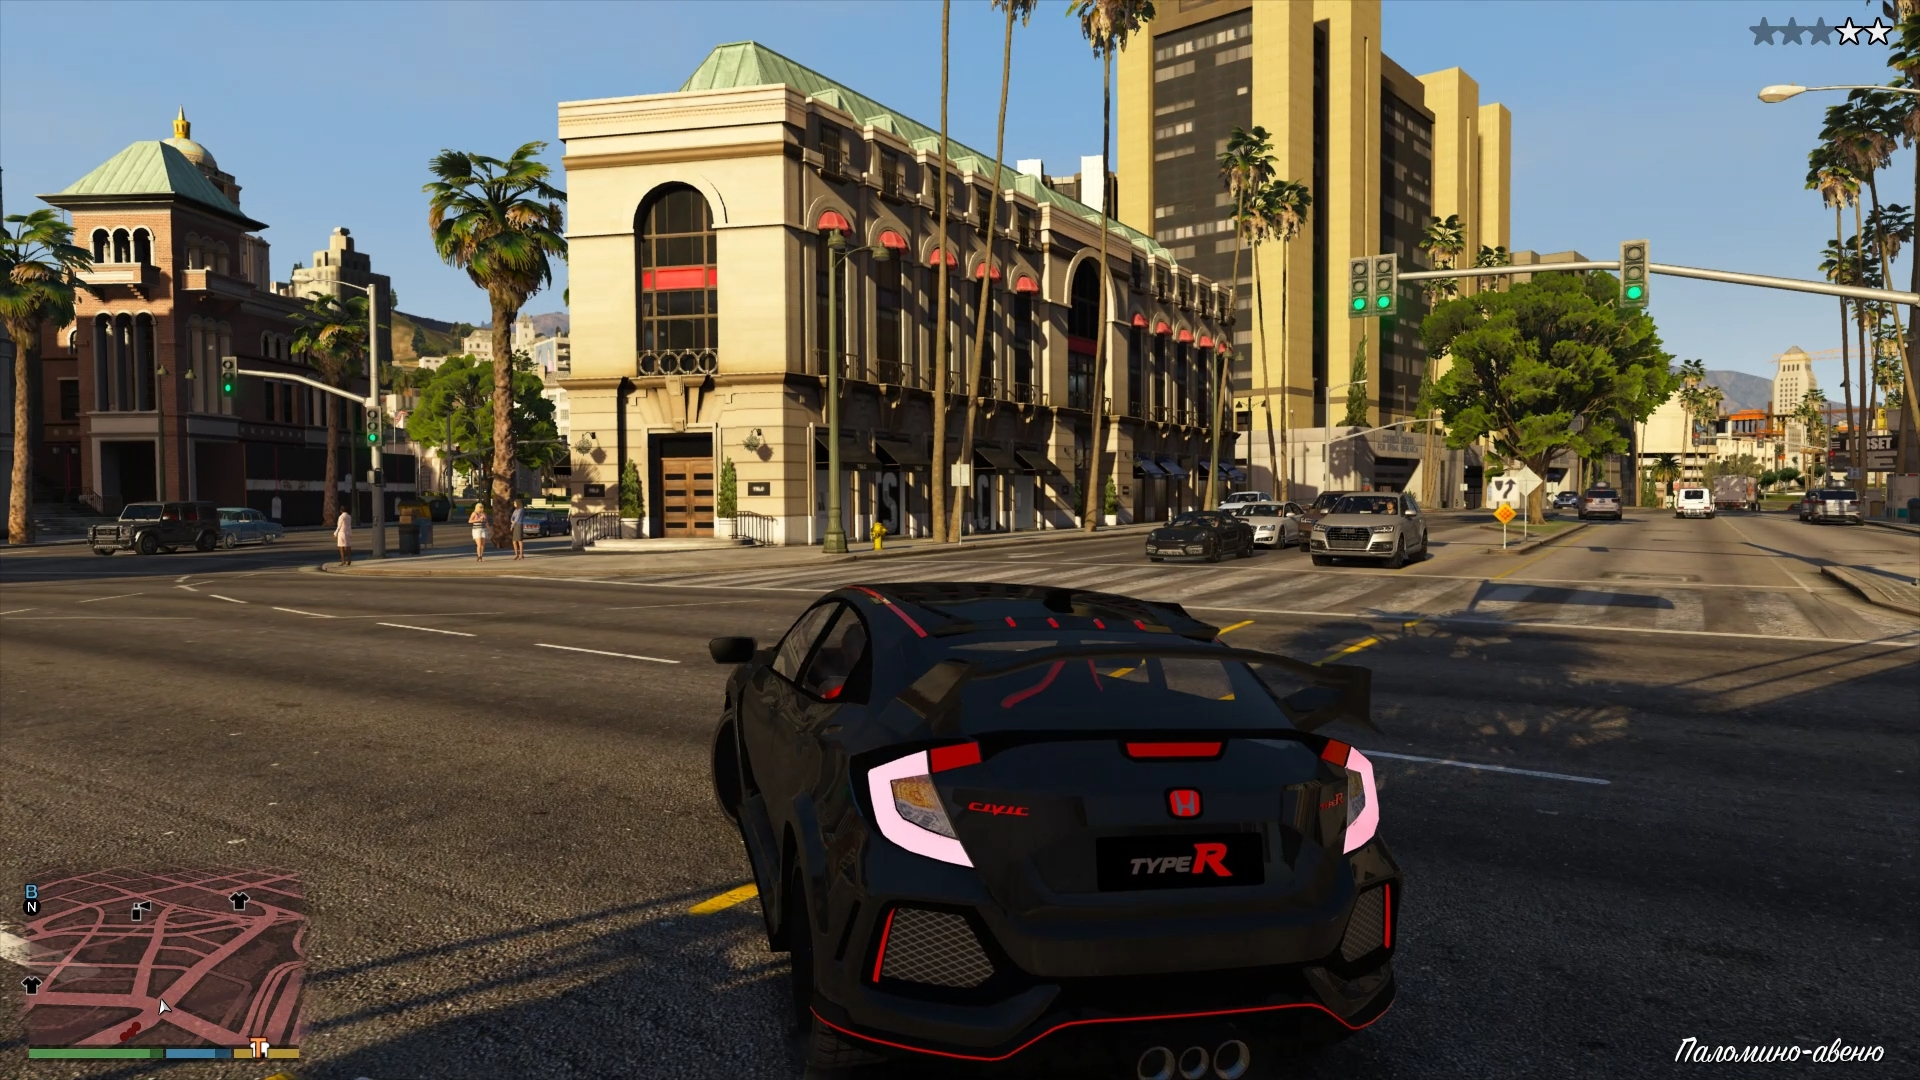 Grand Theft Auto V 10.18.2017 - 21.58.11.03.mp4_snapshot_02.09.jpg - Grand Theft Auto 5